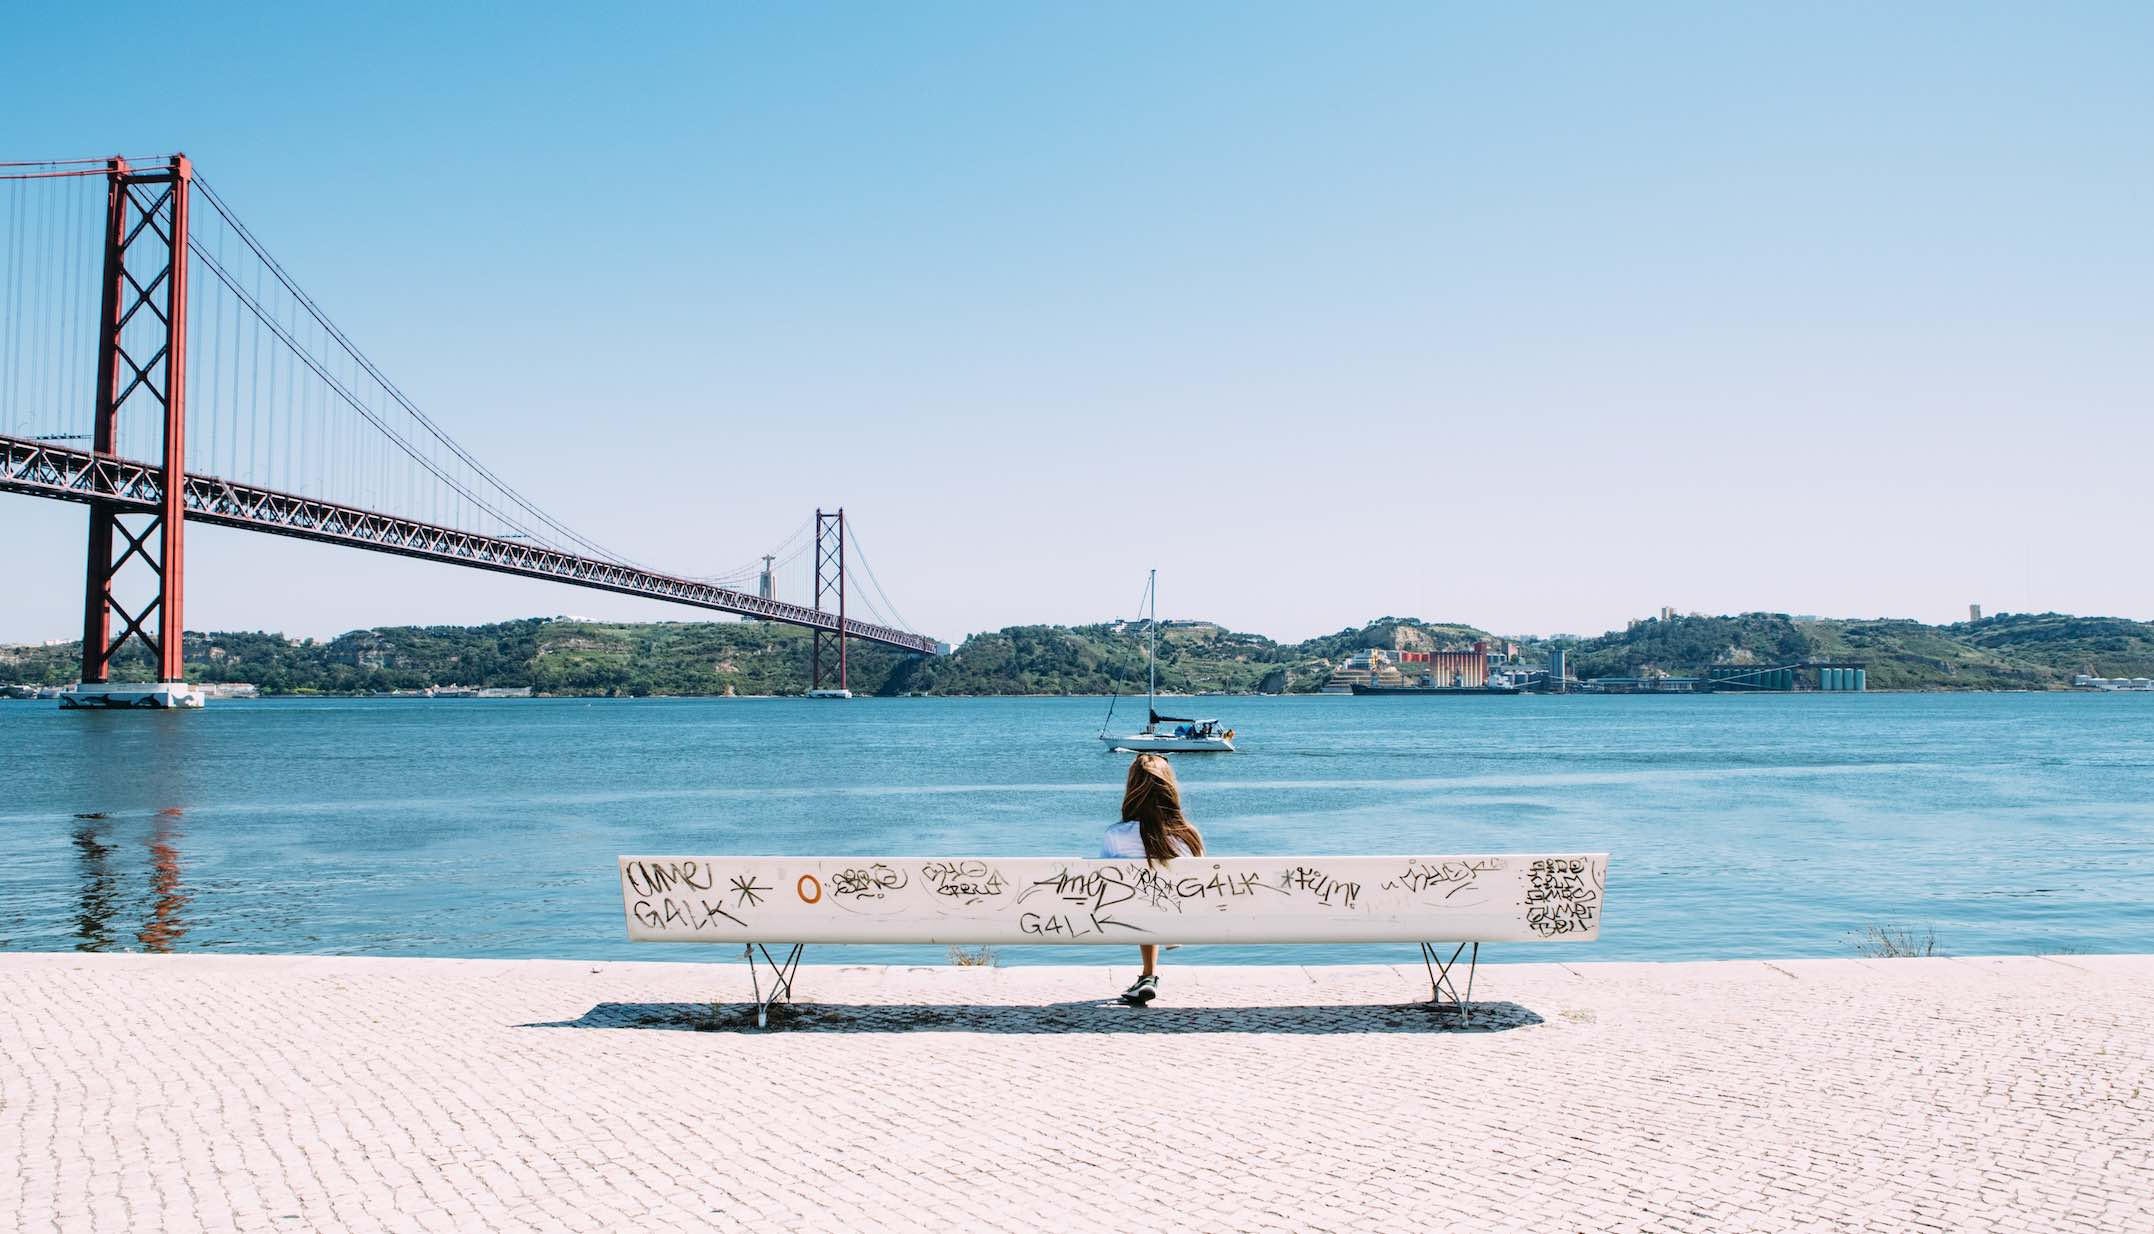 Going to Lisbon? - Portugal's dynamic capital city is bright, welcoming and a destination that wins visitors over with its authenticity, generous people, innovative concepts, rich history, beautiful sights and fabulous food, not to mention spectacular beaches to enjoy year-round.